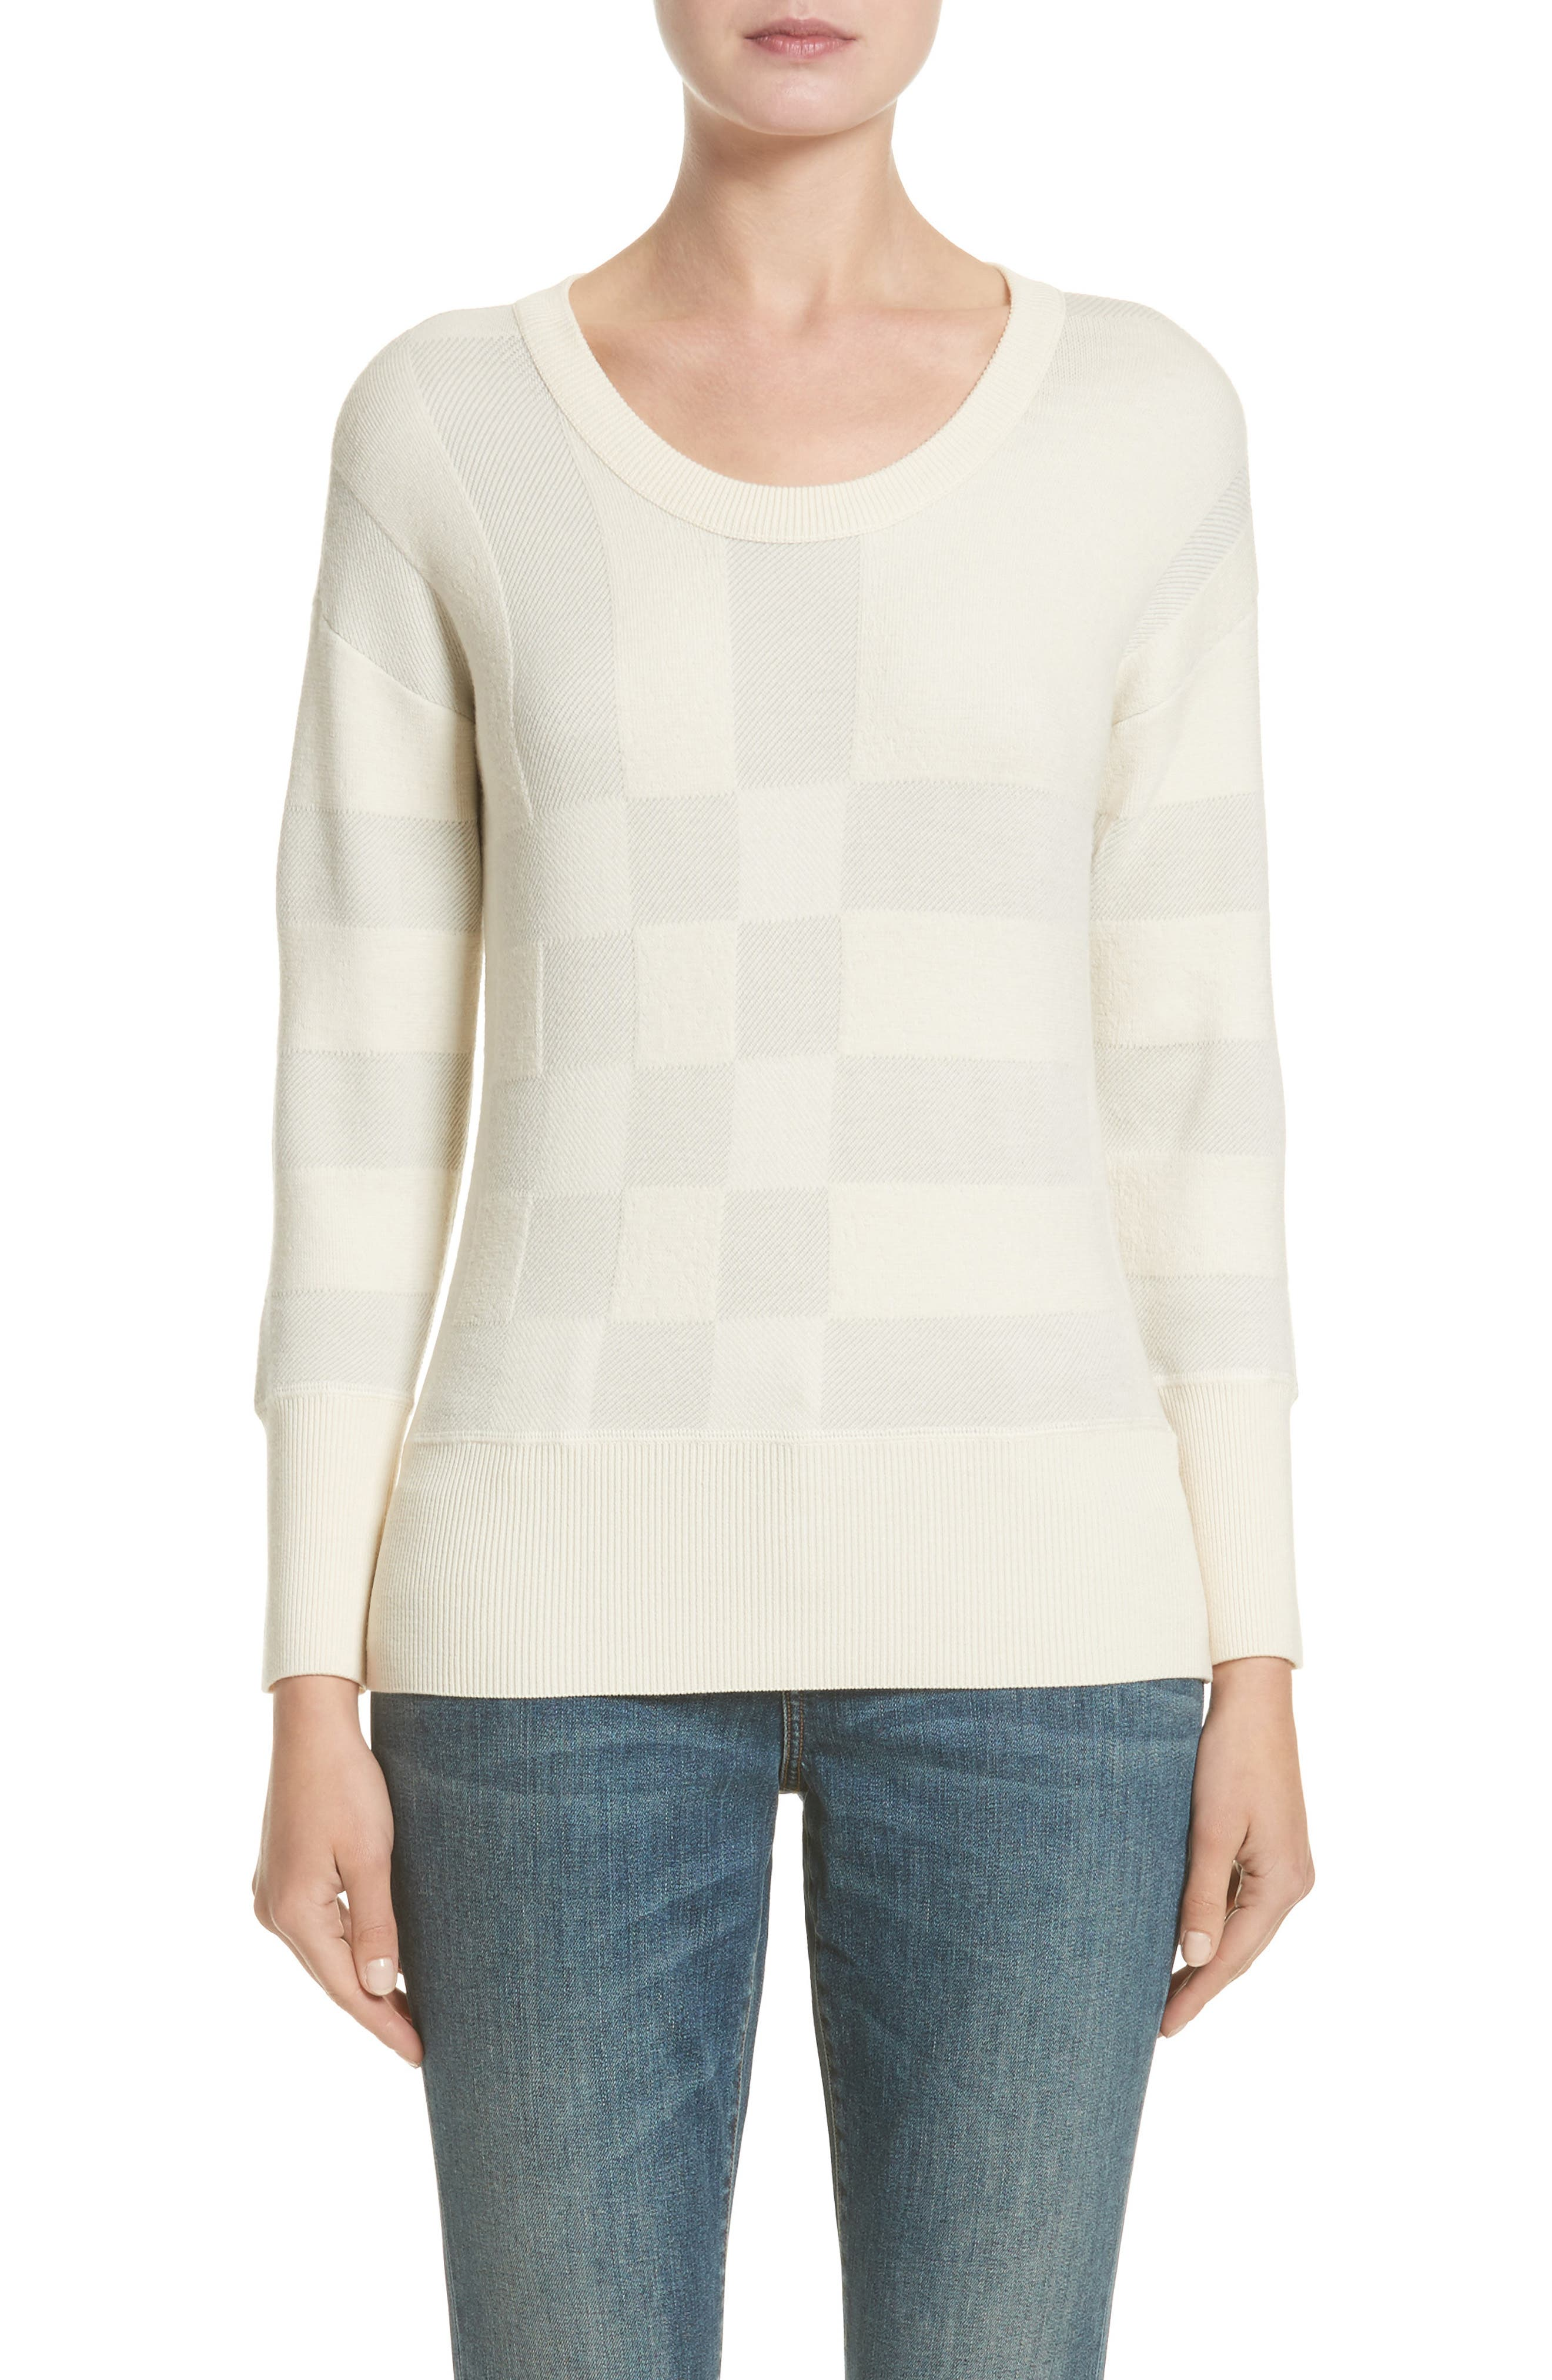 Alternate Image 1 Selected - Burberry Check Knit Wool Blend Sweater (Nordstrom Exclusive)